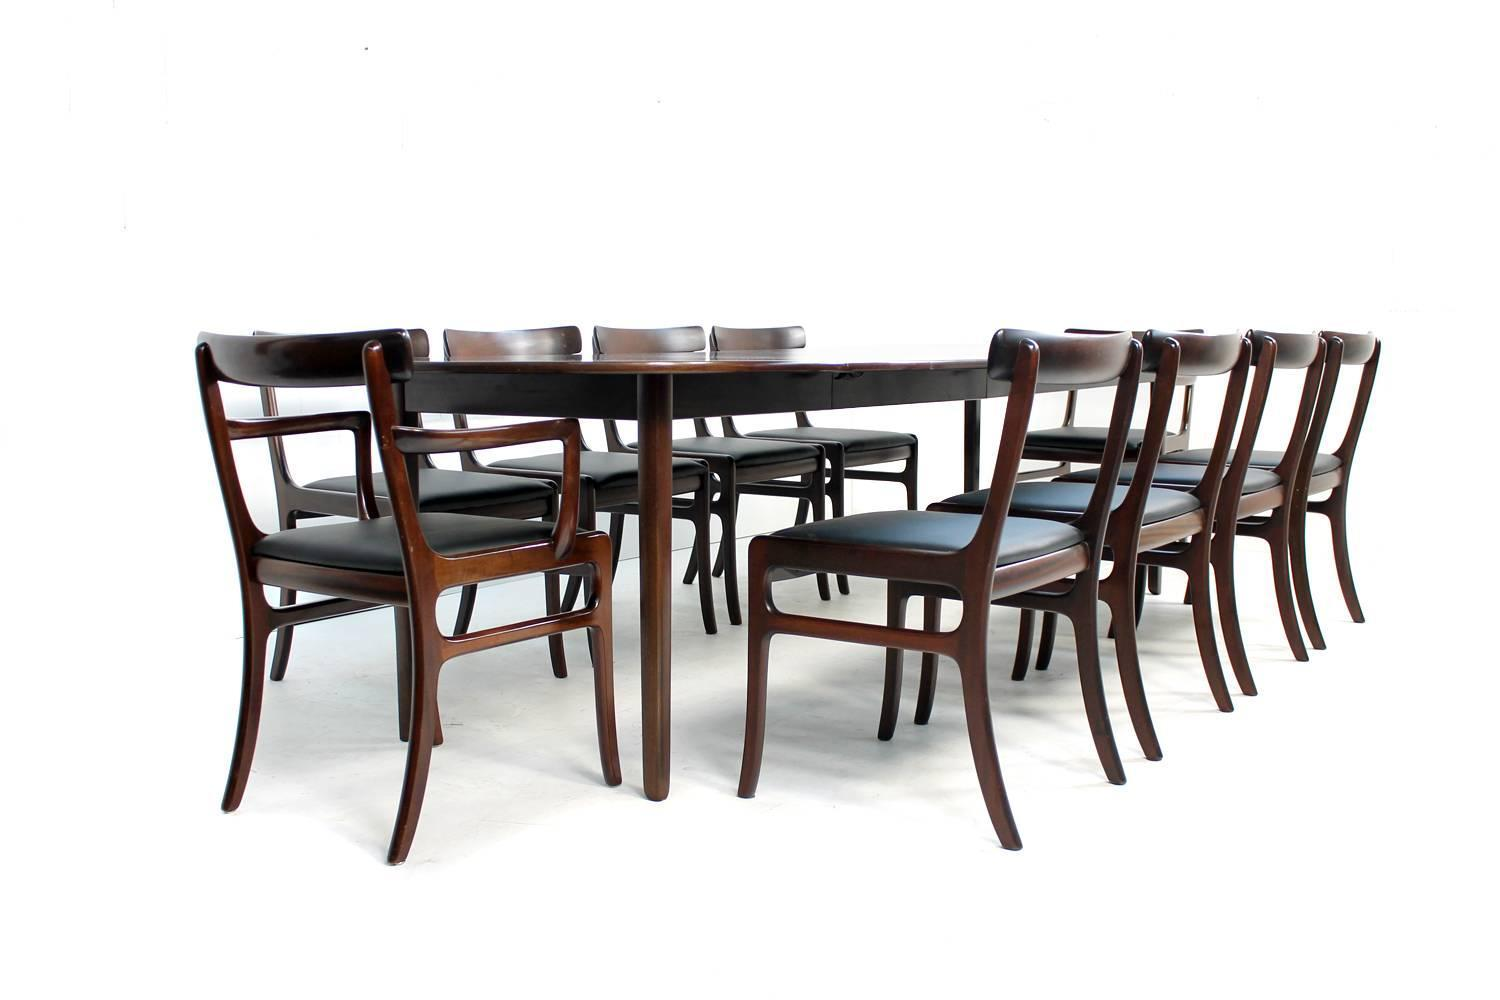 1960s ole wanscher dining room set rungstedlund table